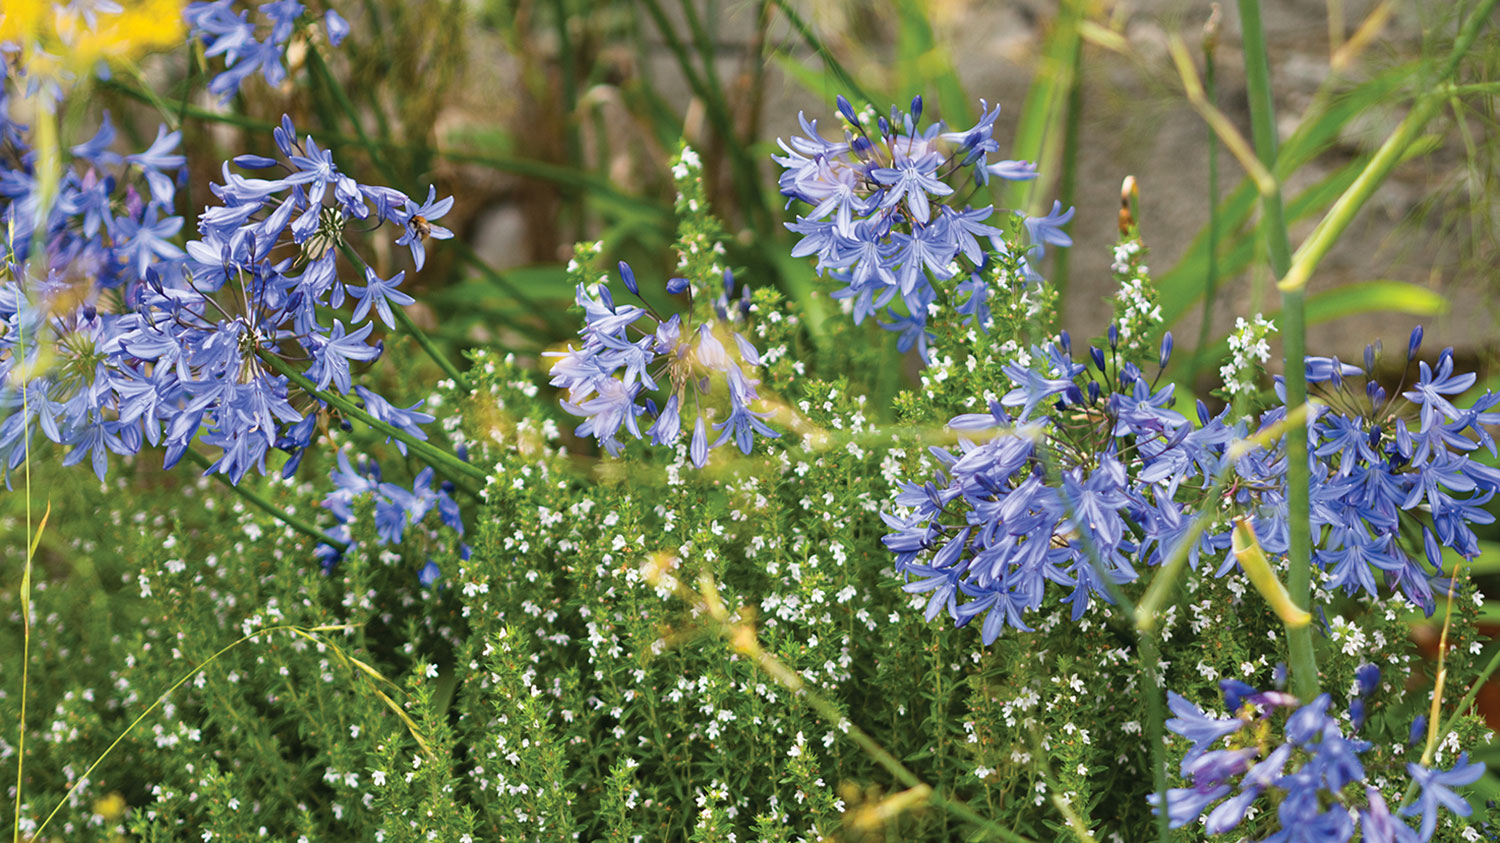 Photo of blooming blue agapanthus interplanted with an herbaceous plant with small white flowers